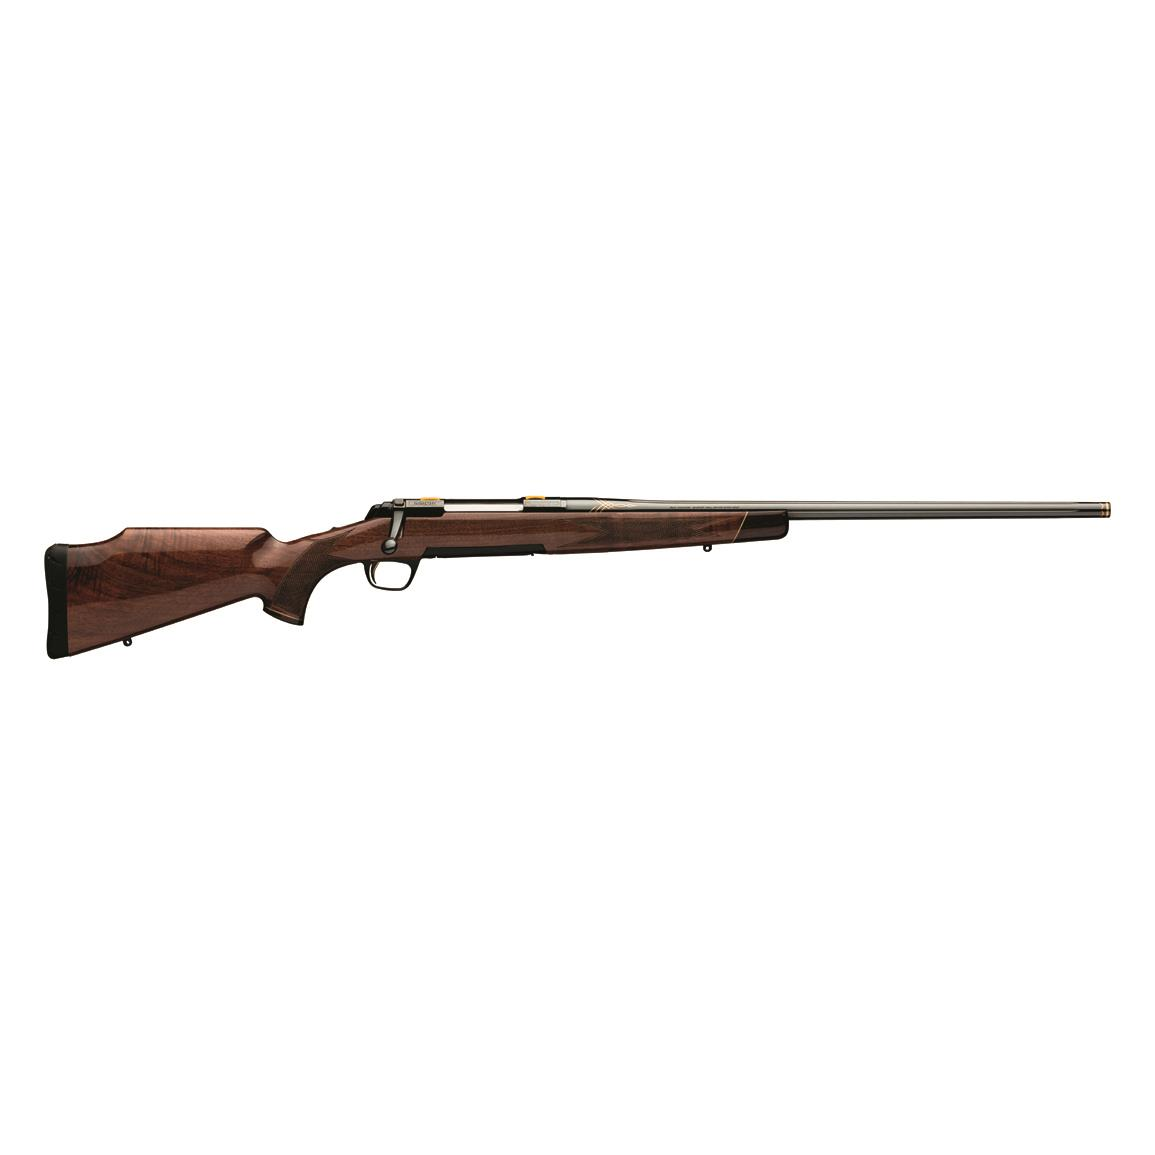 "Browning X-Bolt Medallion Safari Grade, Bolt Action, .270 Winchester, 24"" Heavy Barrel, 3+1 Rounds"